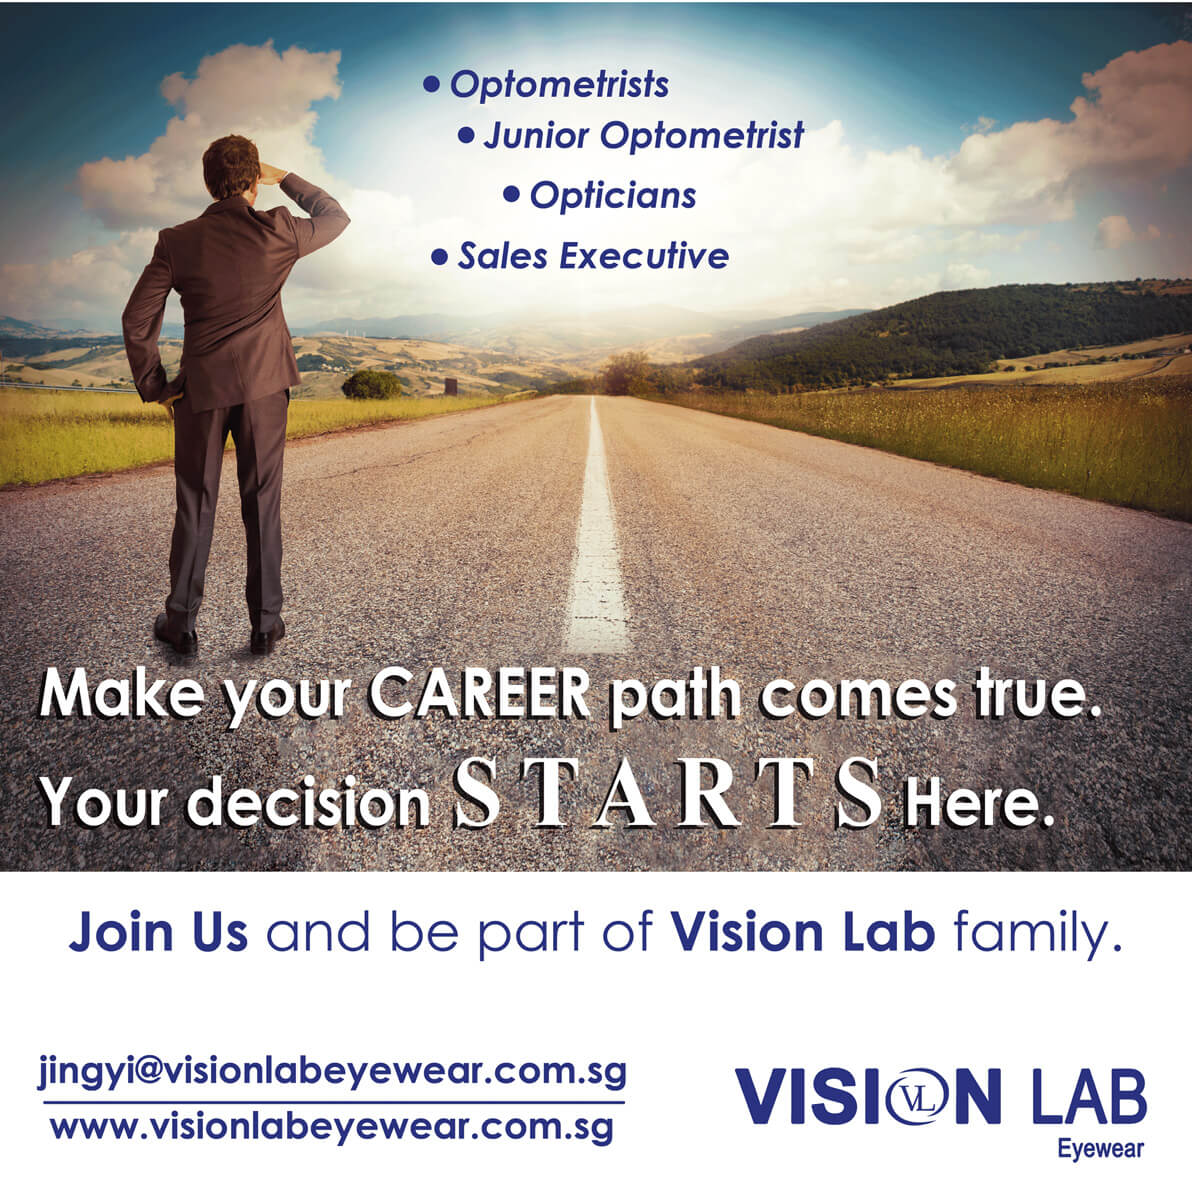 Vision-Lab-Recruitment-ads_FOR-WEBSITE_USE2